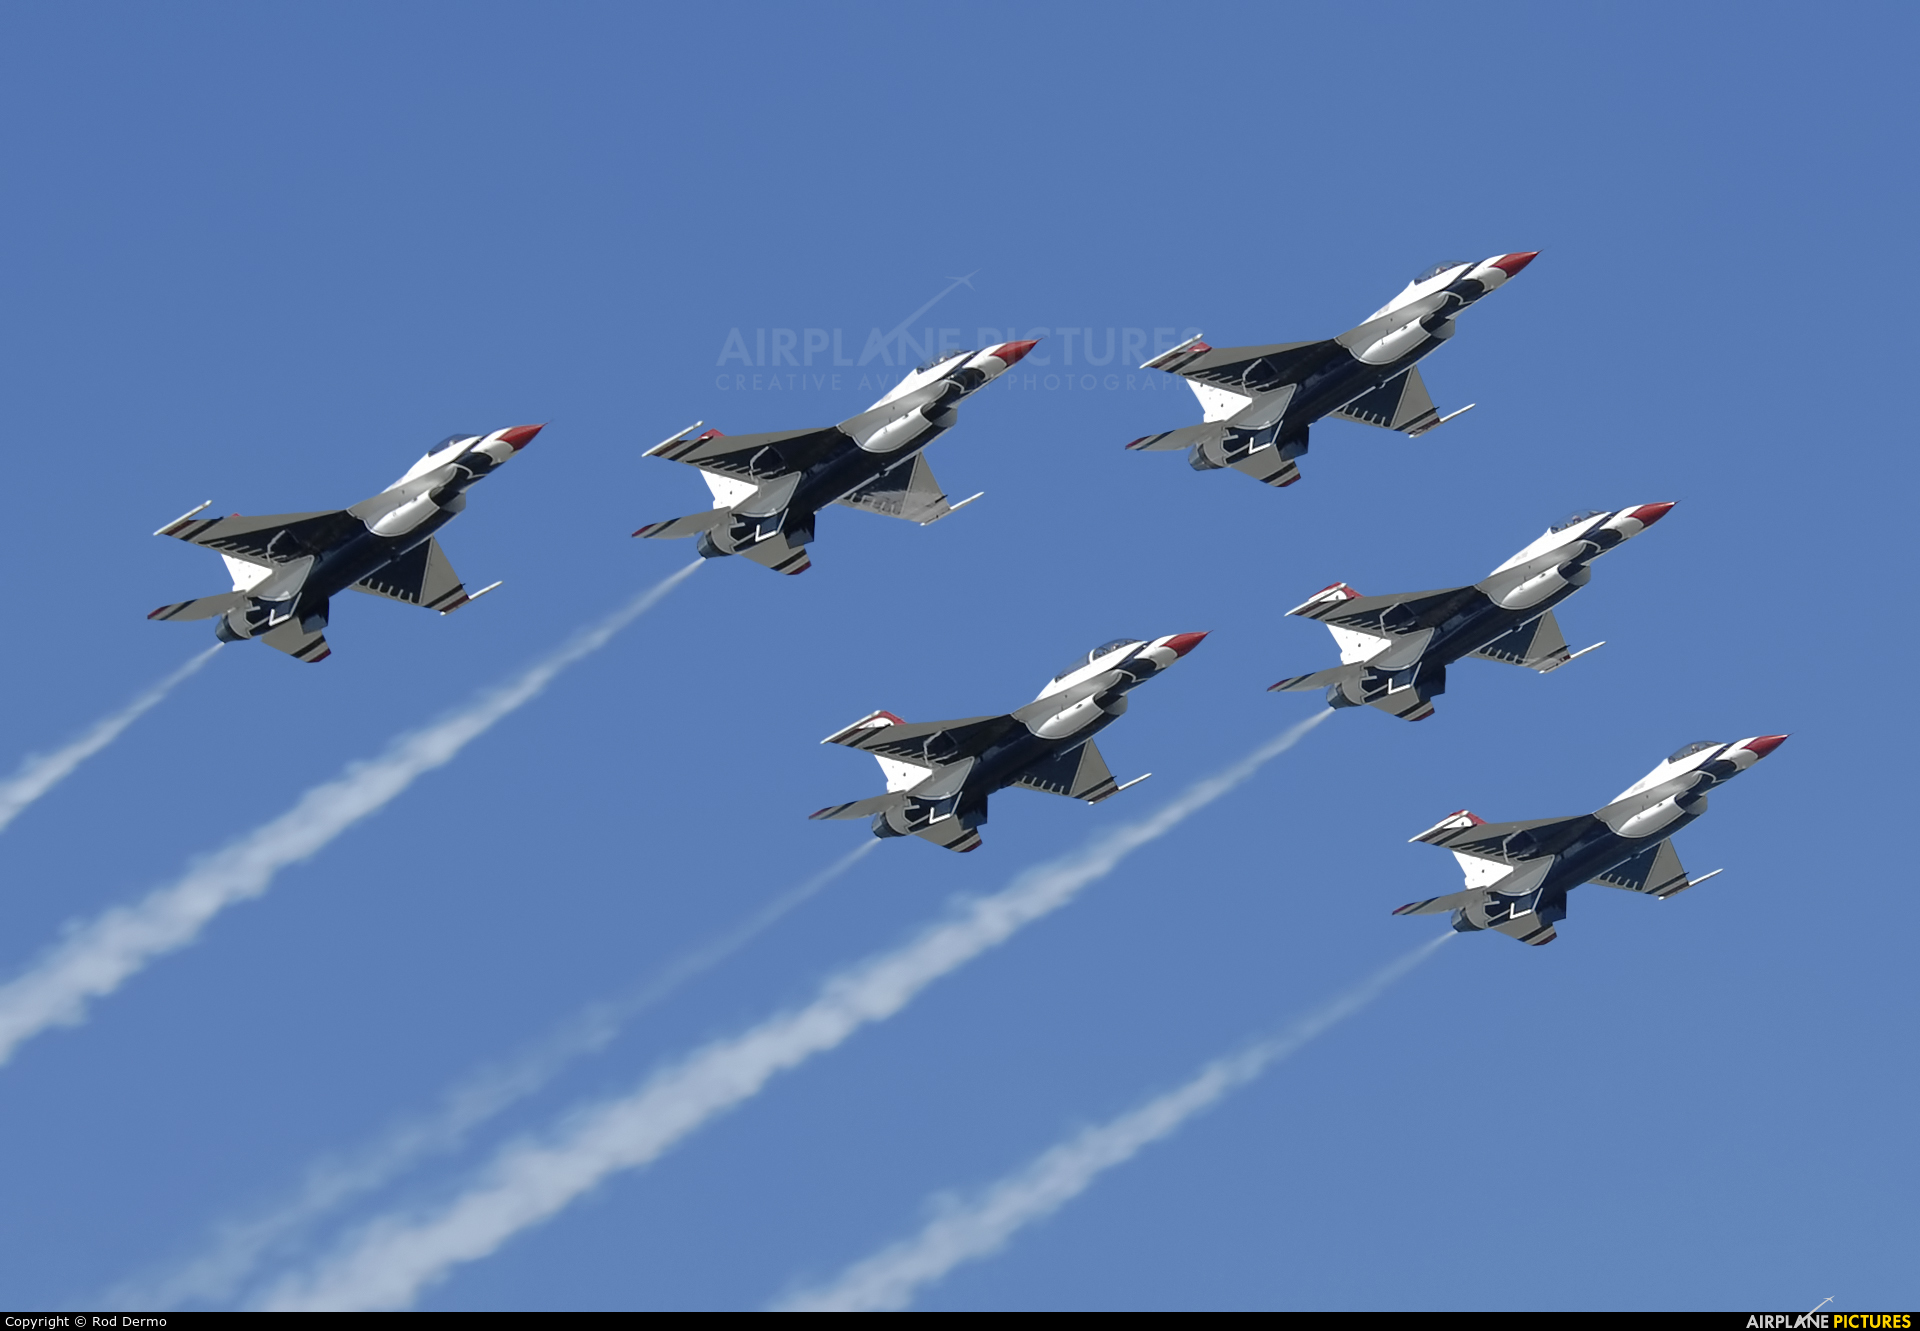 USA - Air Force : Thunderbirds 92-3896 aircraft at Cleveland - Burke Lakefront